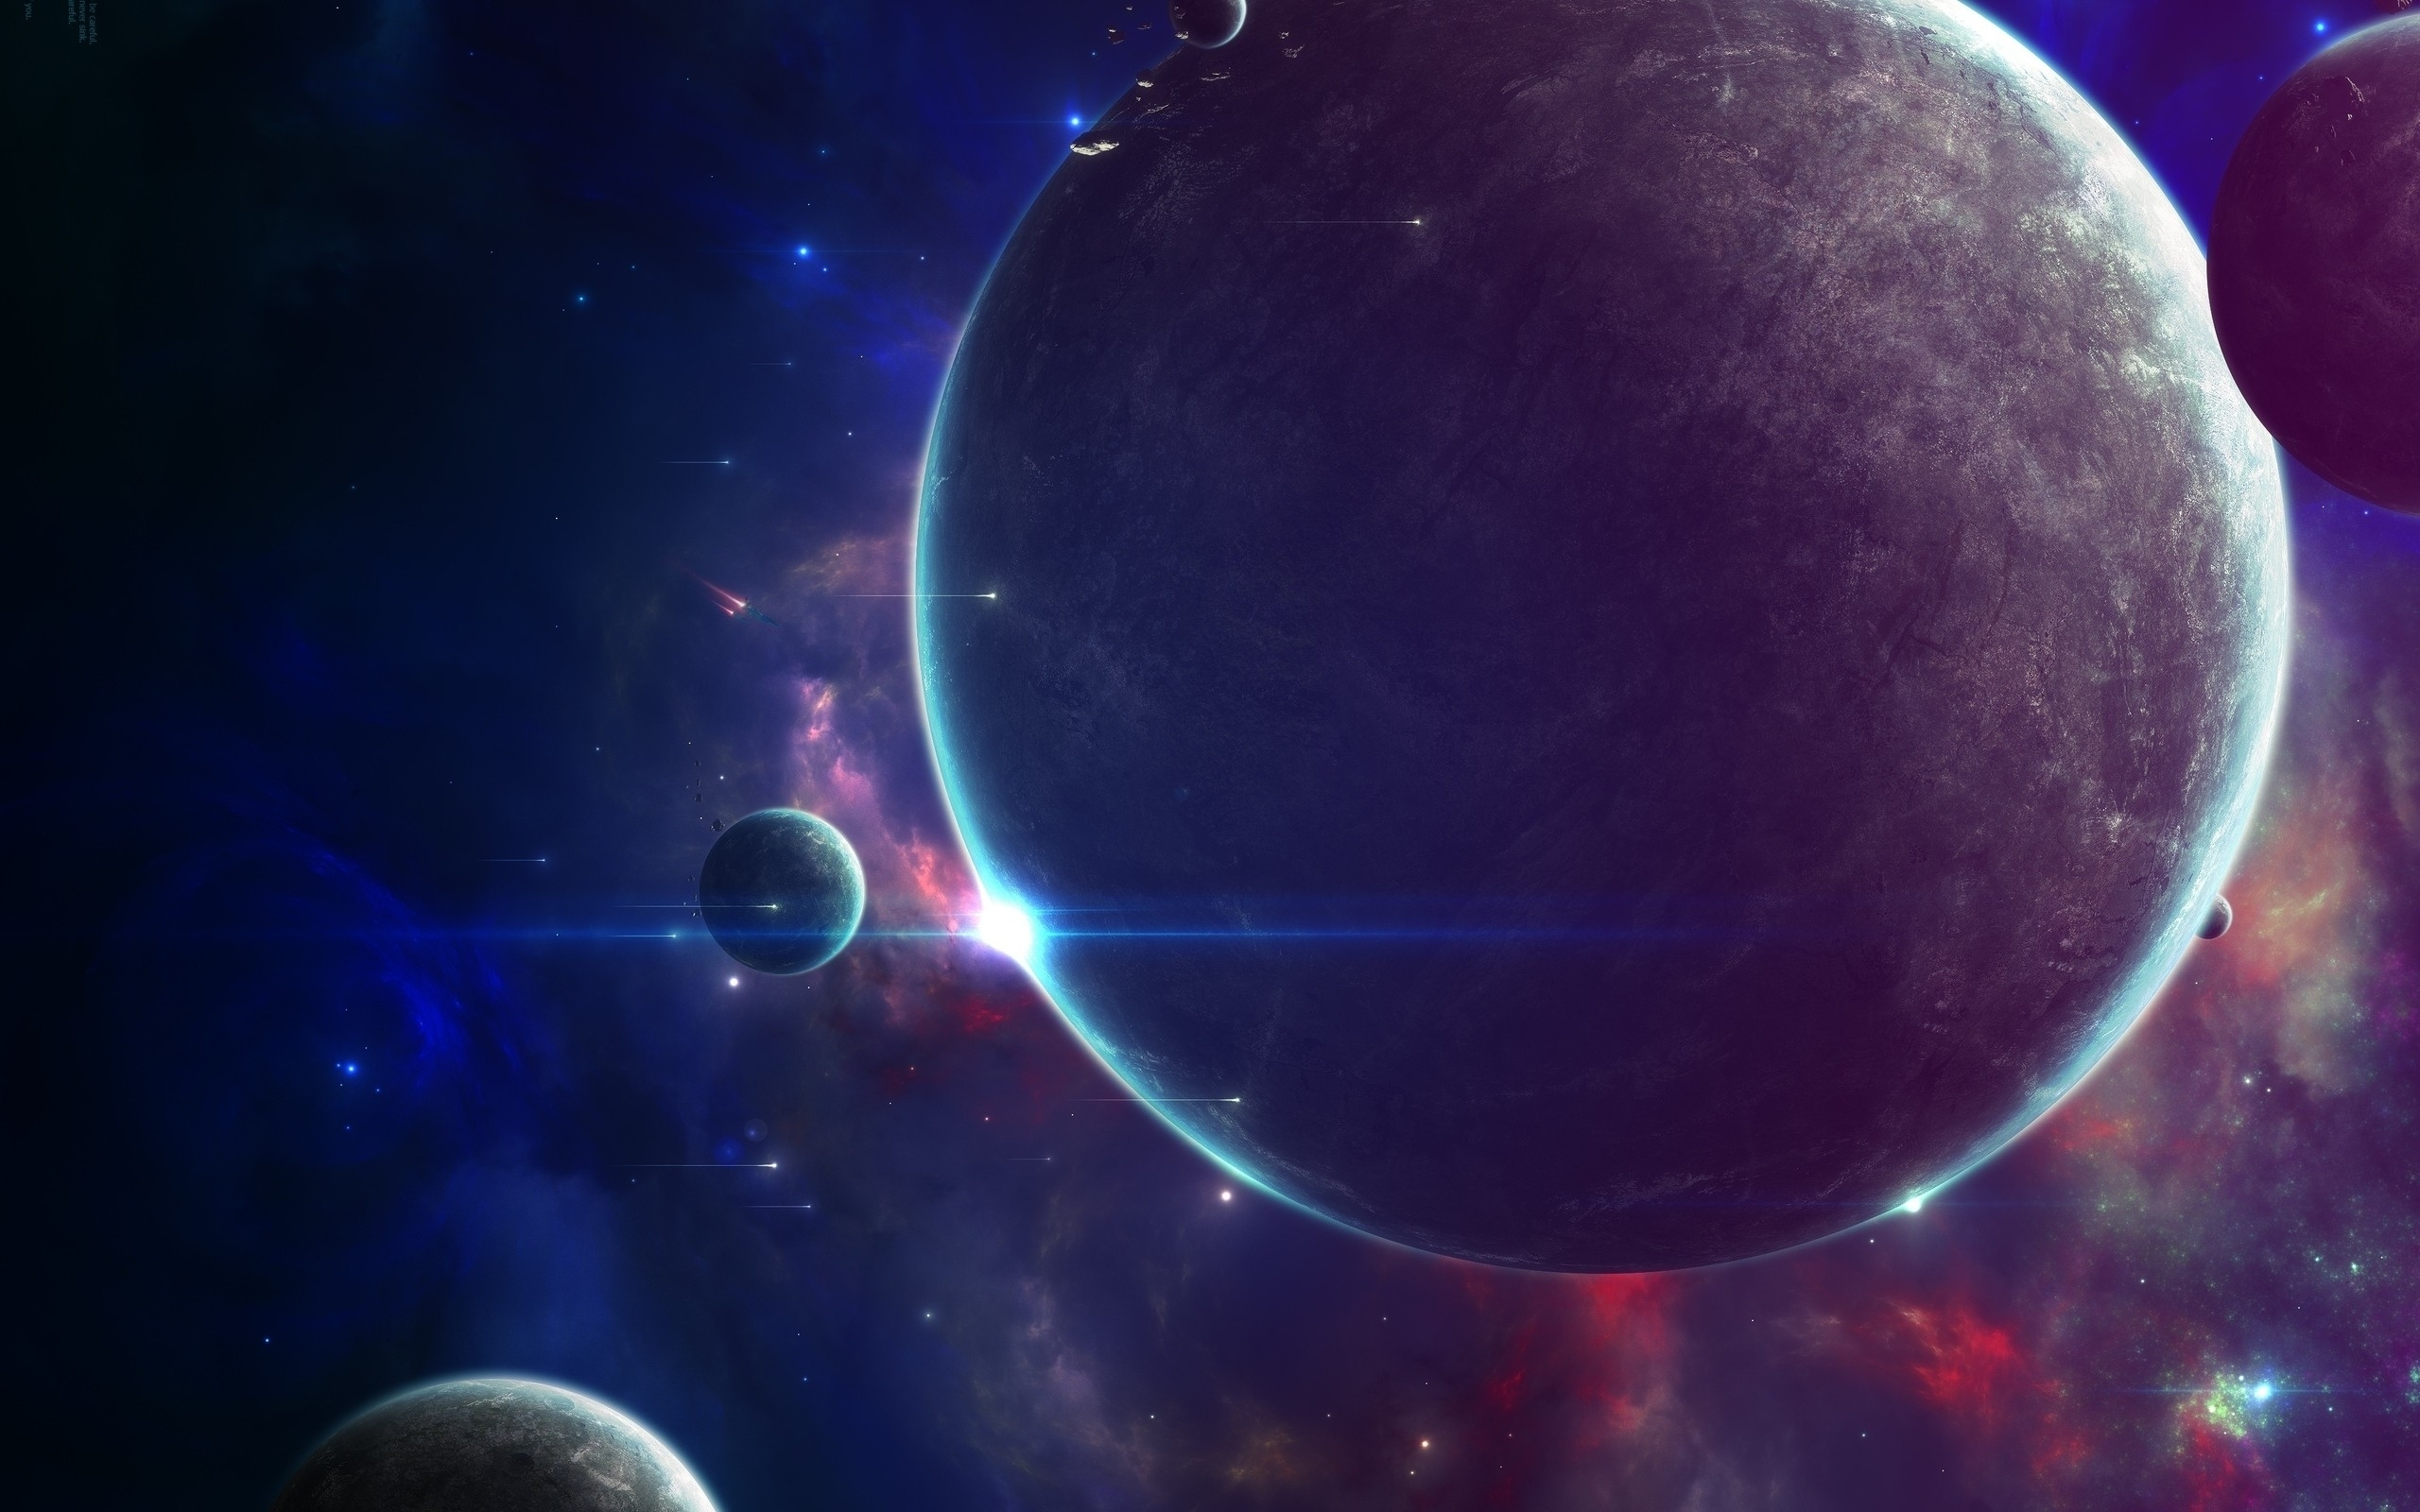 wallpaper outer space futuristic planets categories space views 229 2560x1600